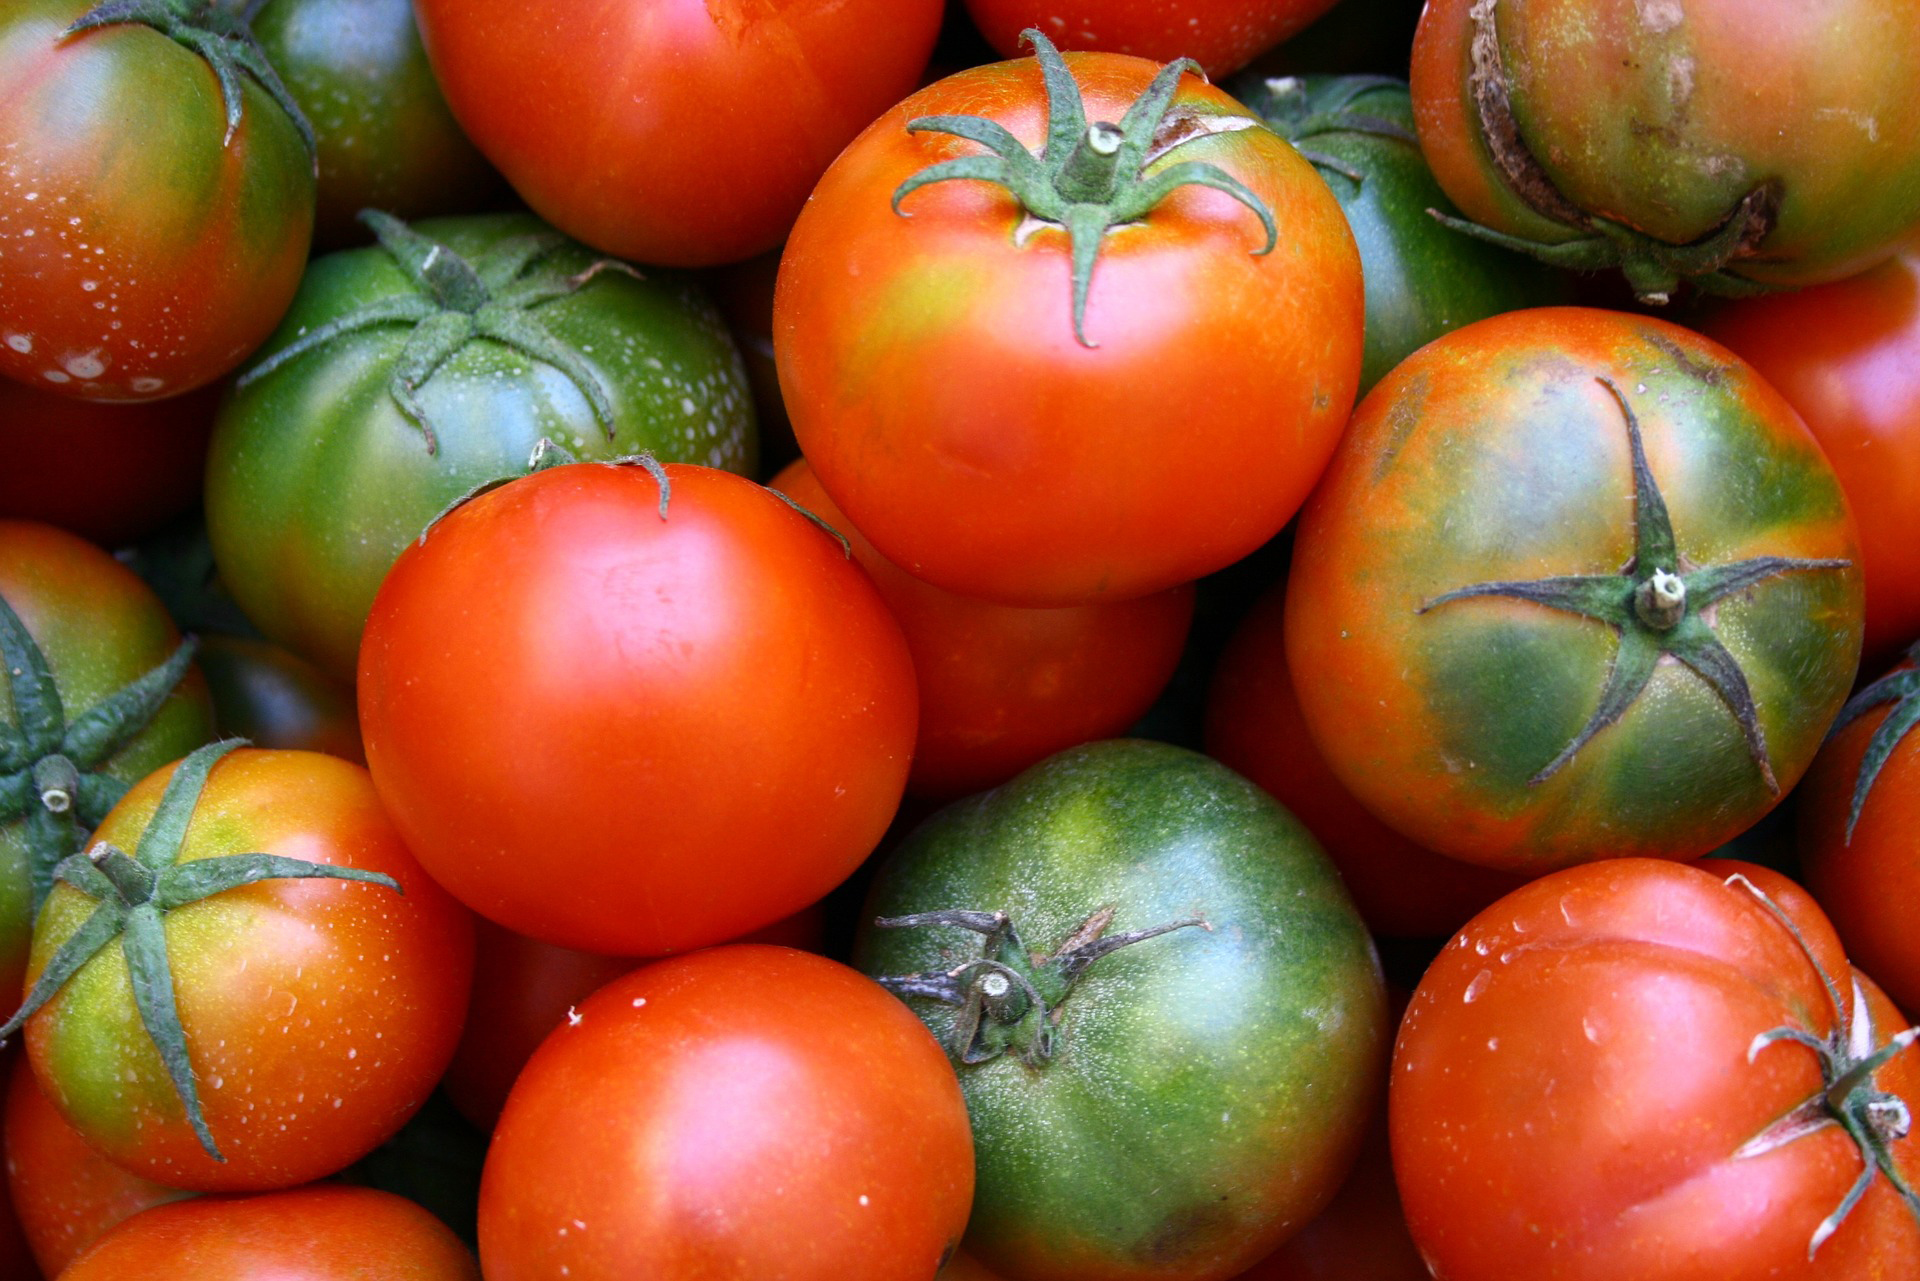 Tomatoes: Planting, Growing and Harvesting Tomato Plants | The Old ...